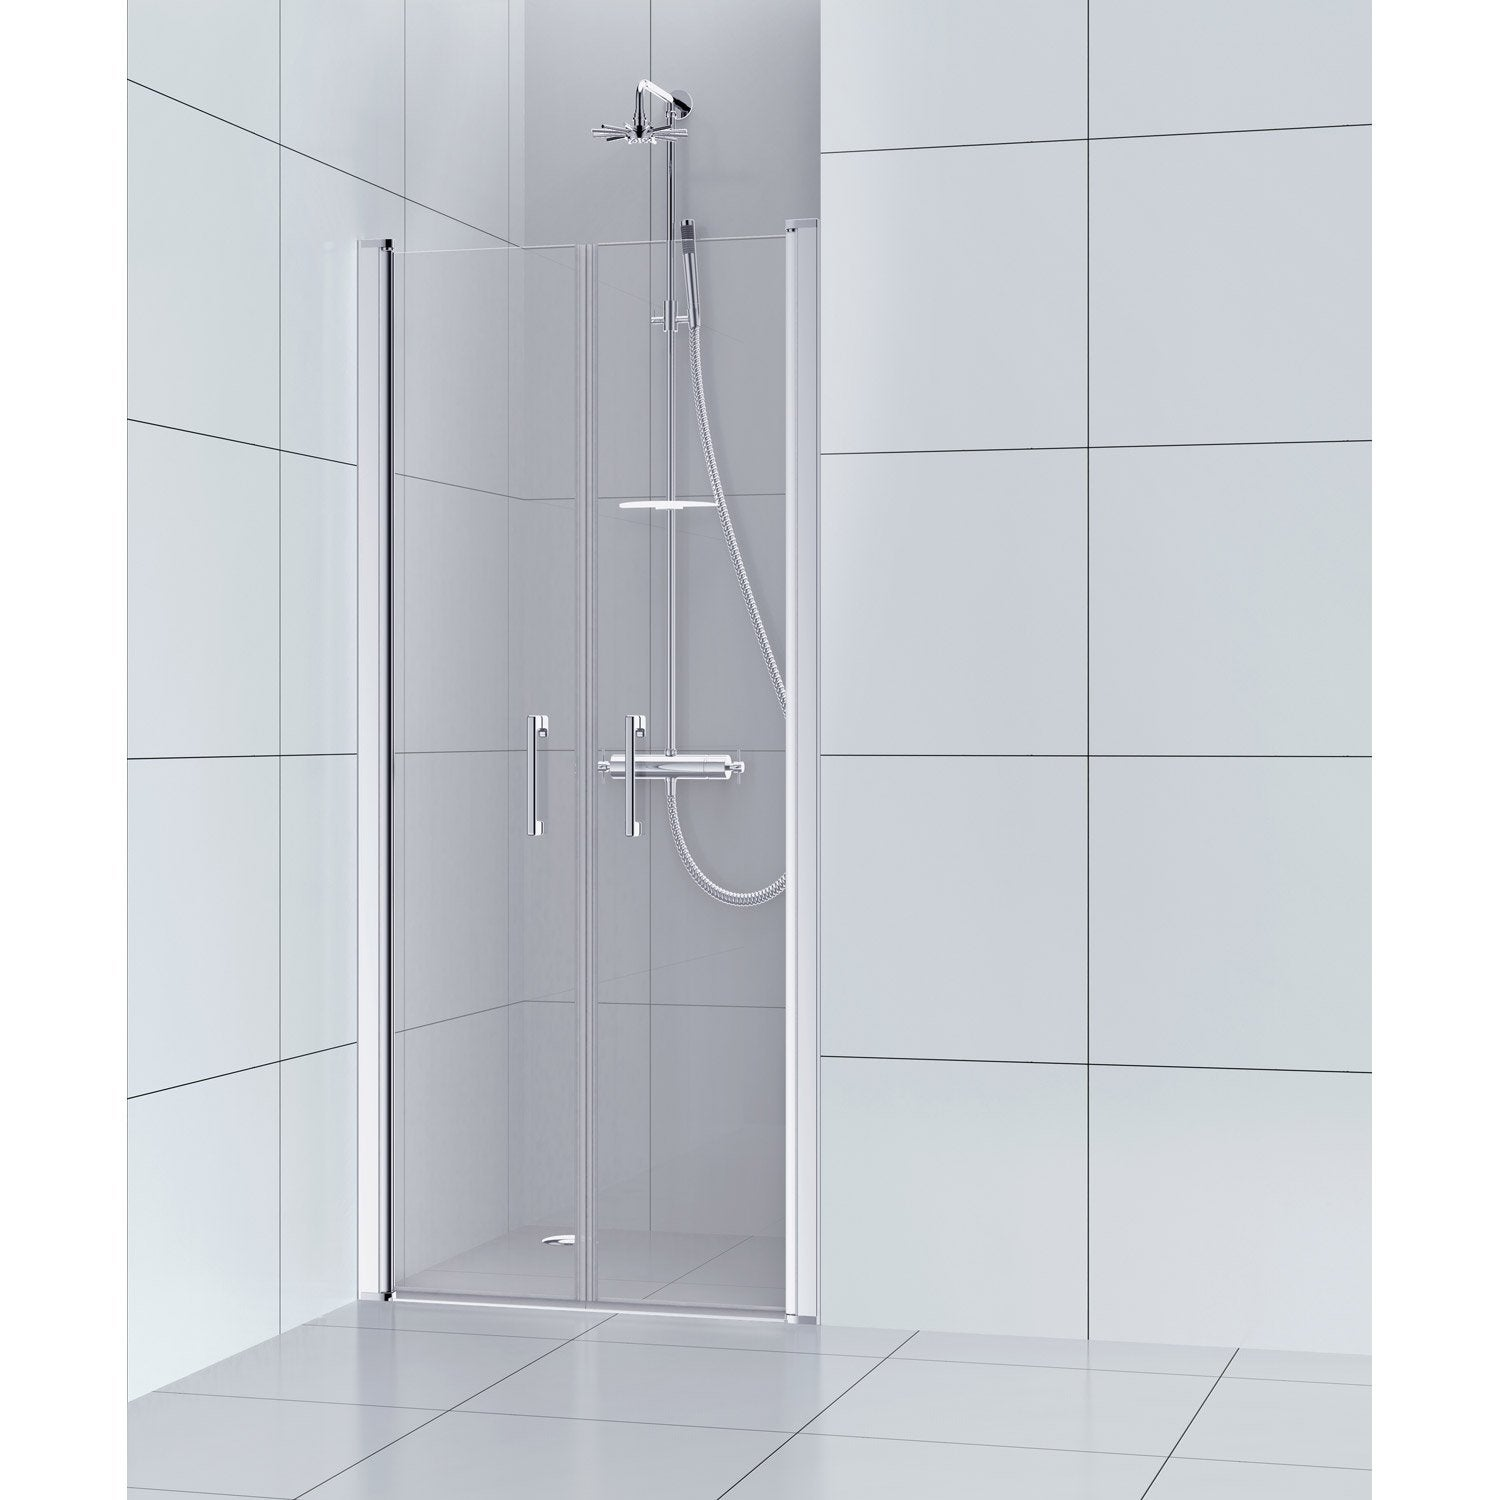 Porte de douche battante for Leroy merlin porte douche